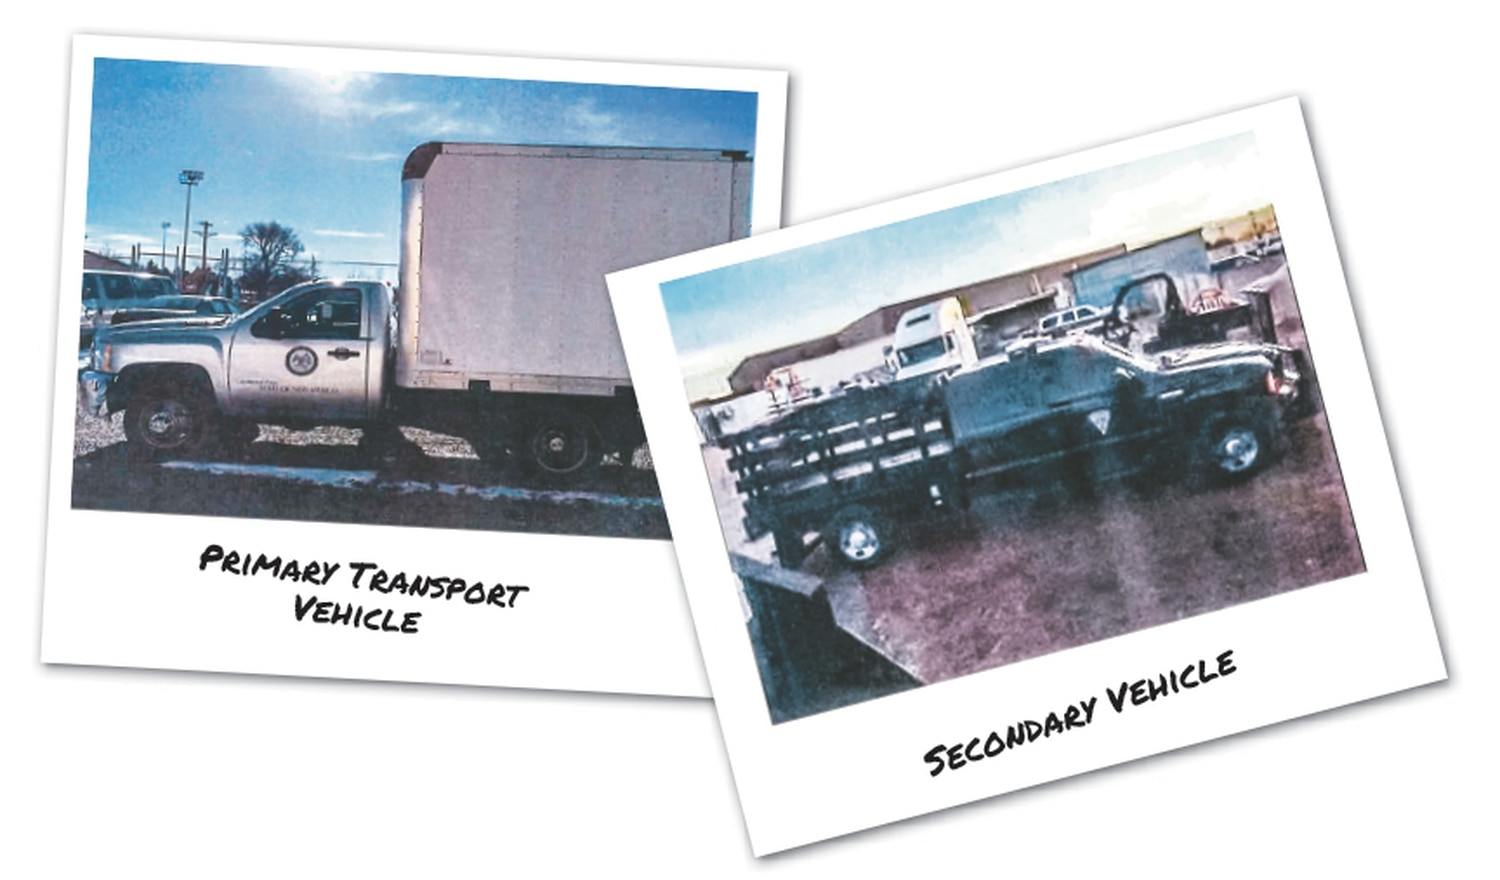 These photos, obtained through a public records request, show the vehicles the state Environment Department planned to use to move americium out of the Santa Fe city limits in February 2016.